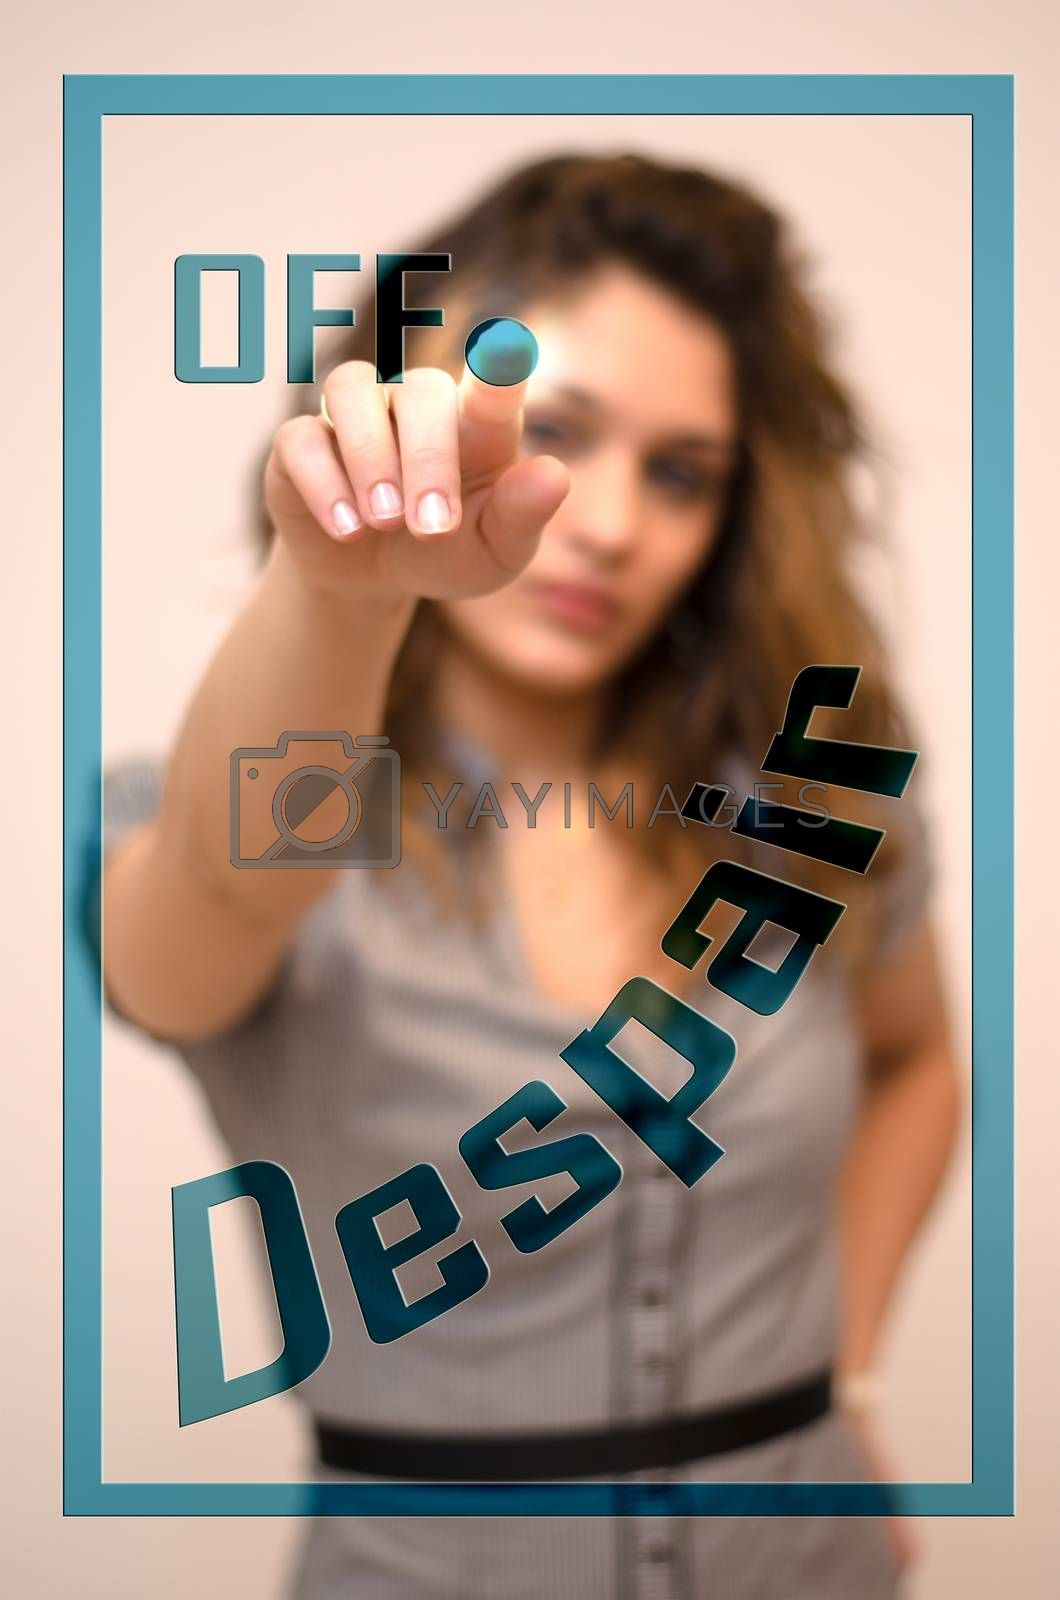 young woman turning off Despair on digital panel